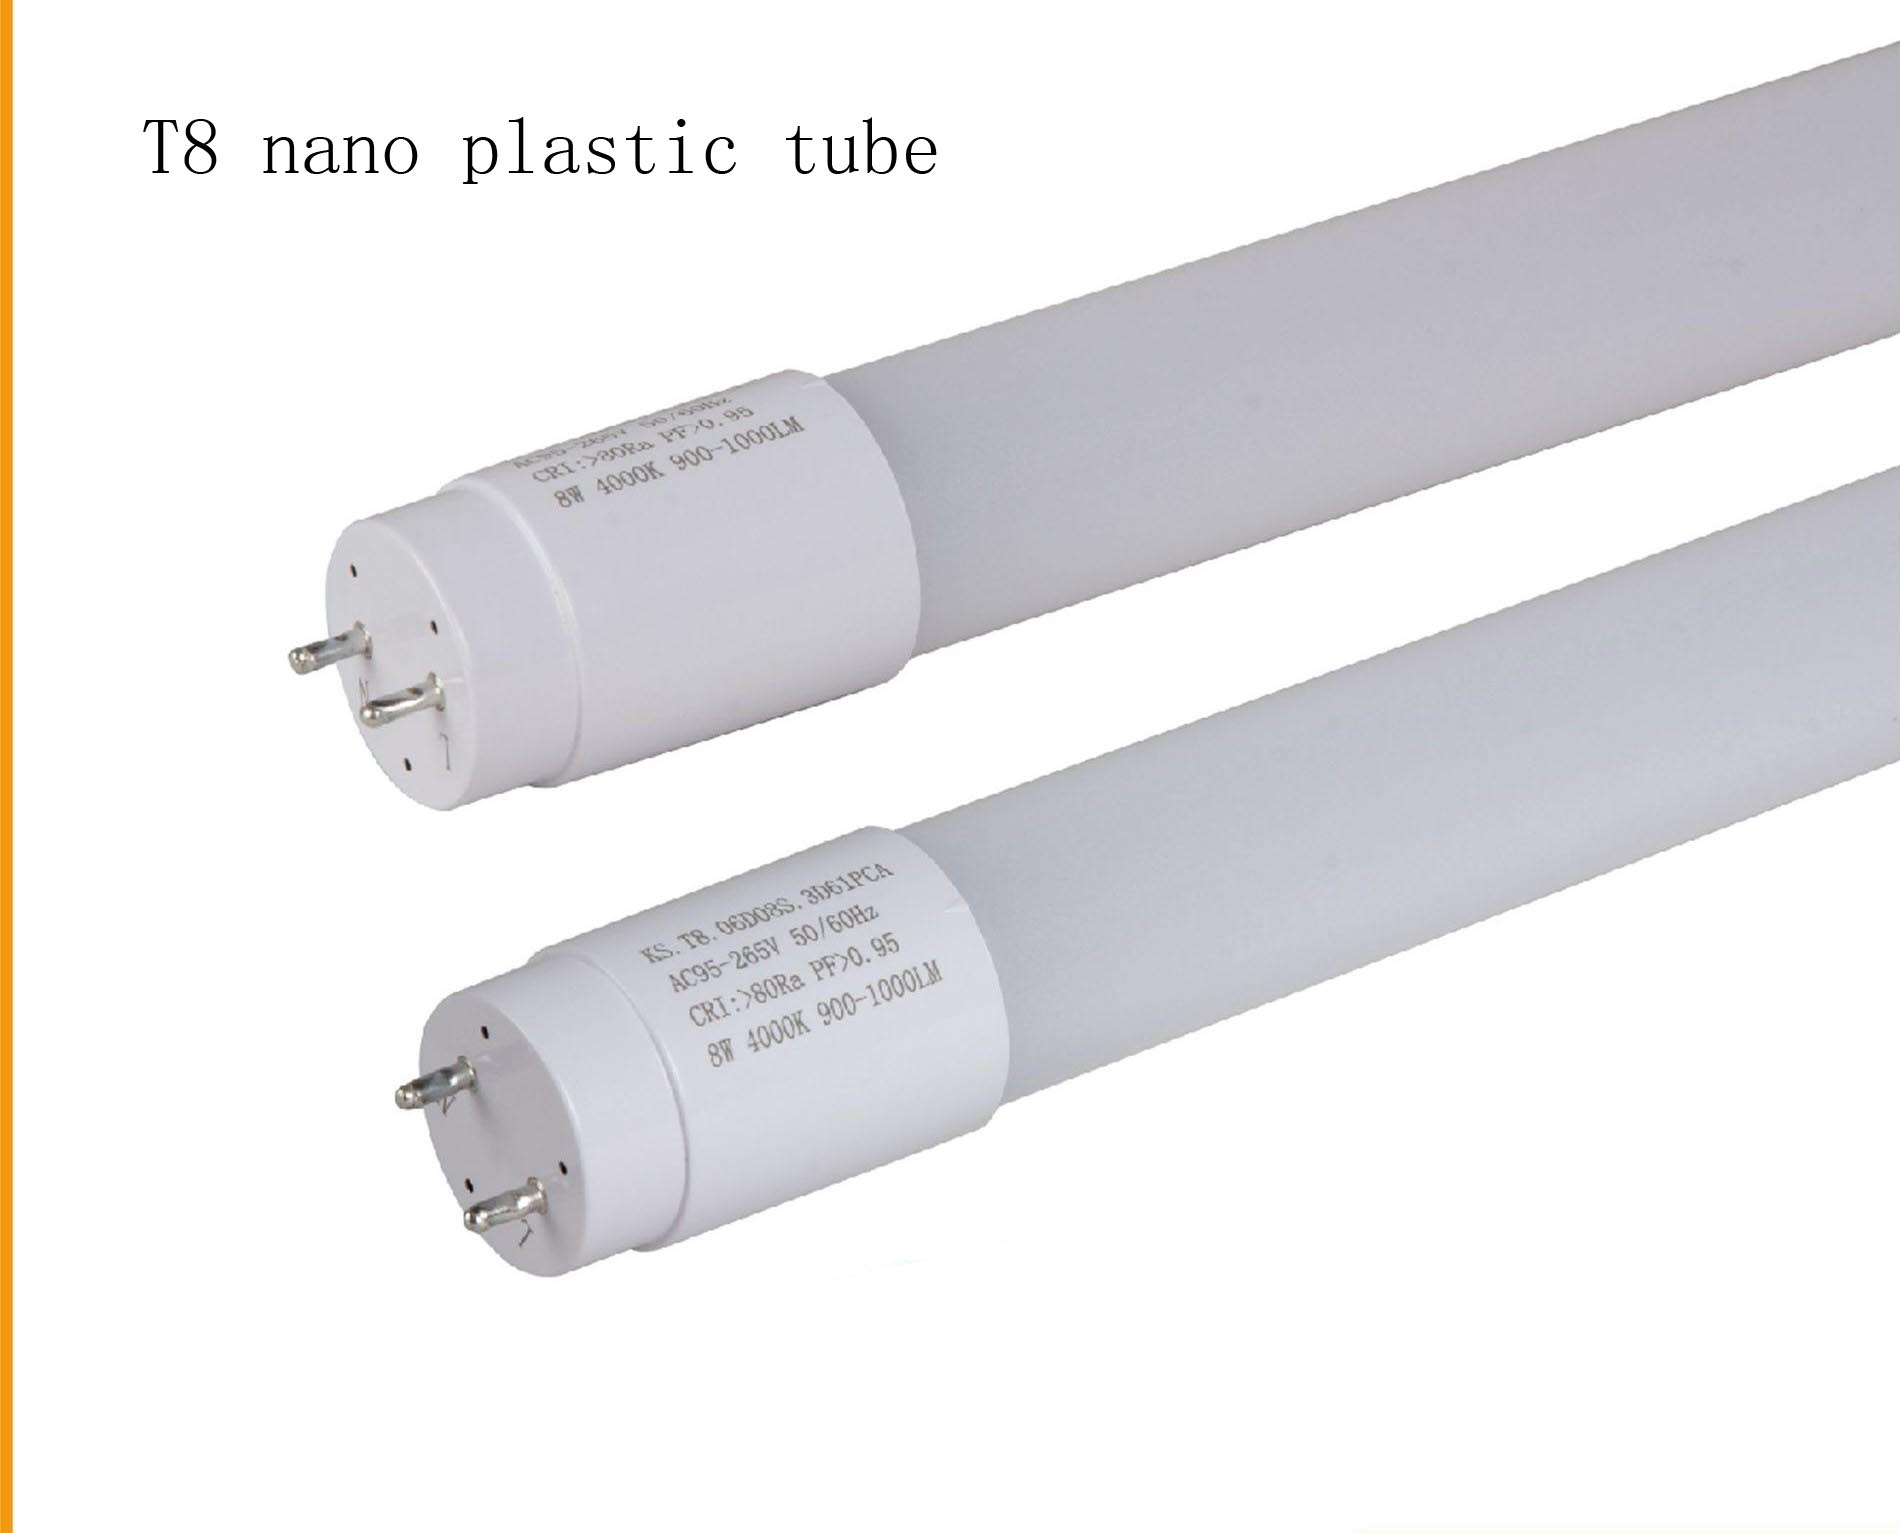 New LED nano plastic T8 tube